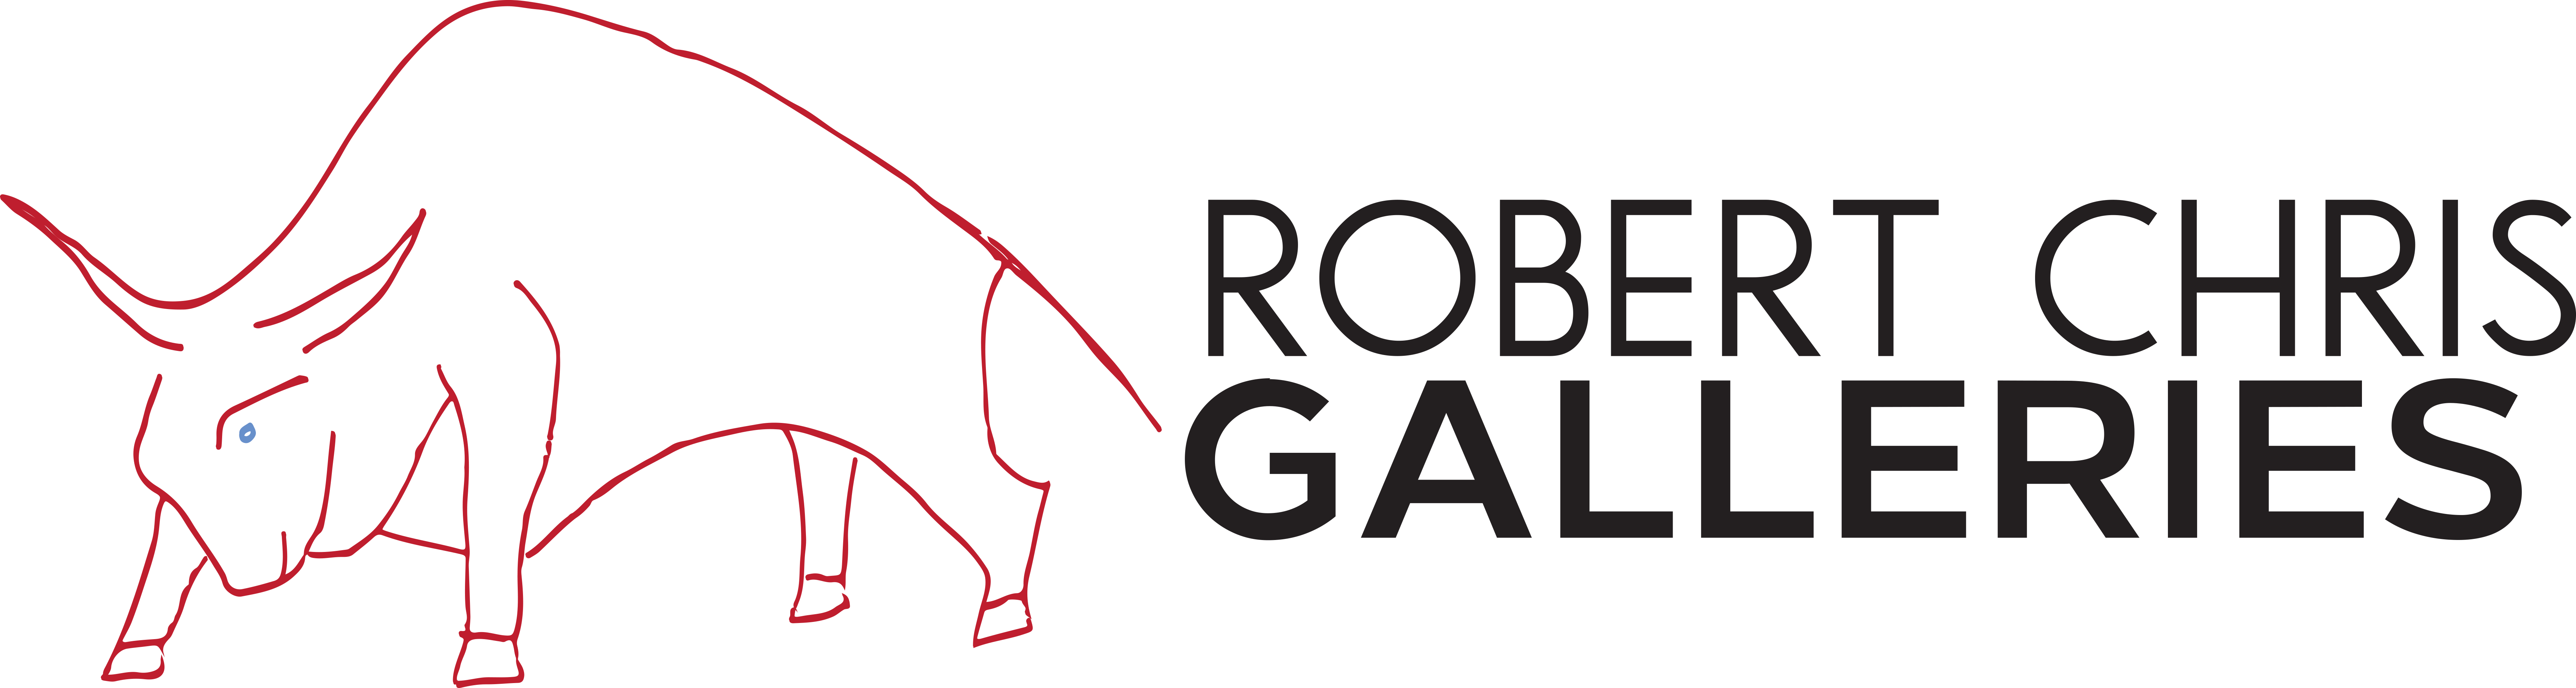 Robert Chris Gallery